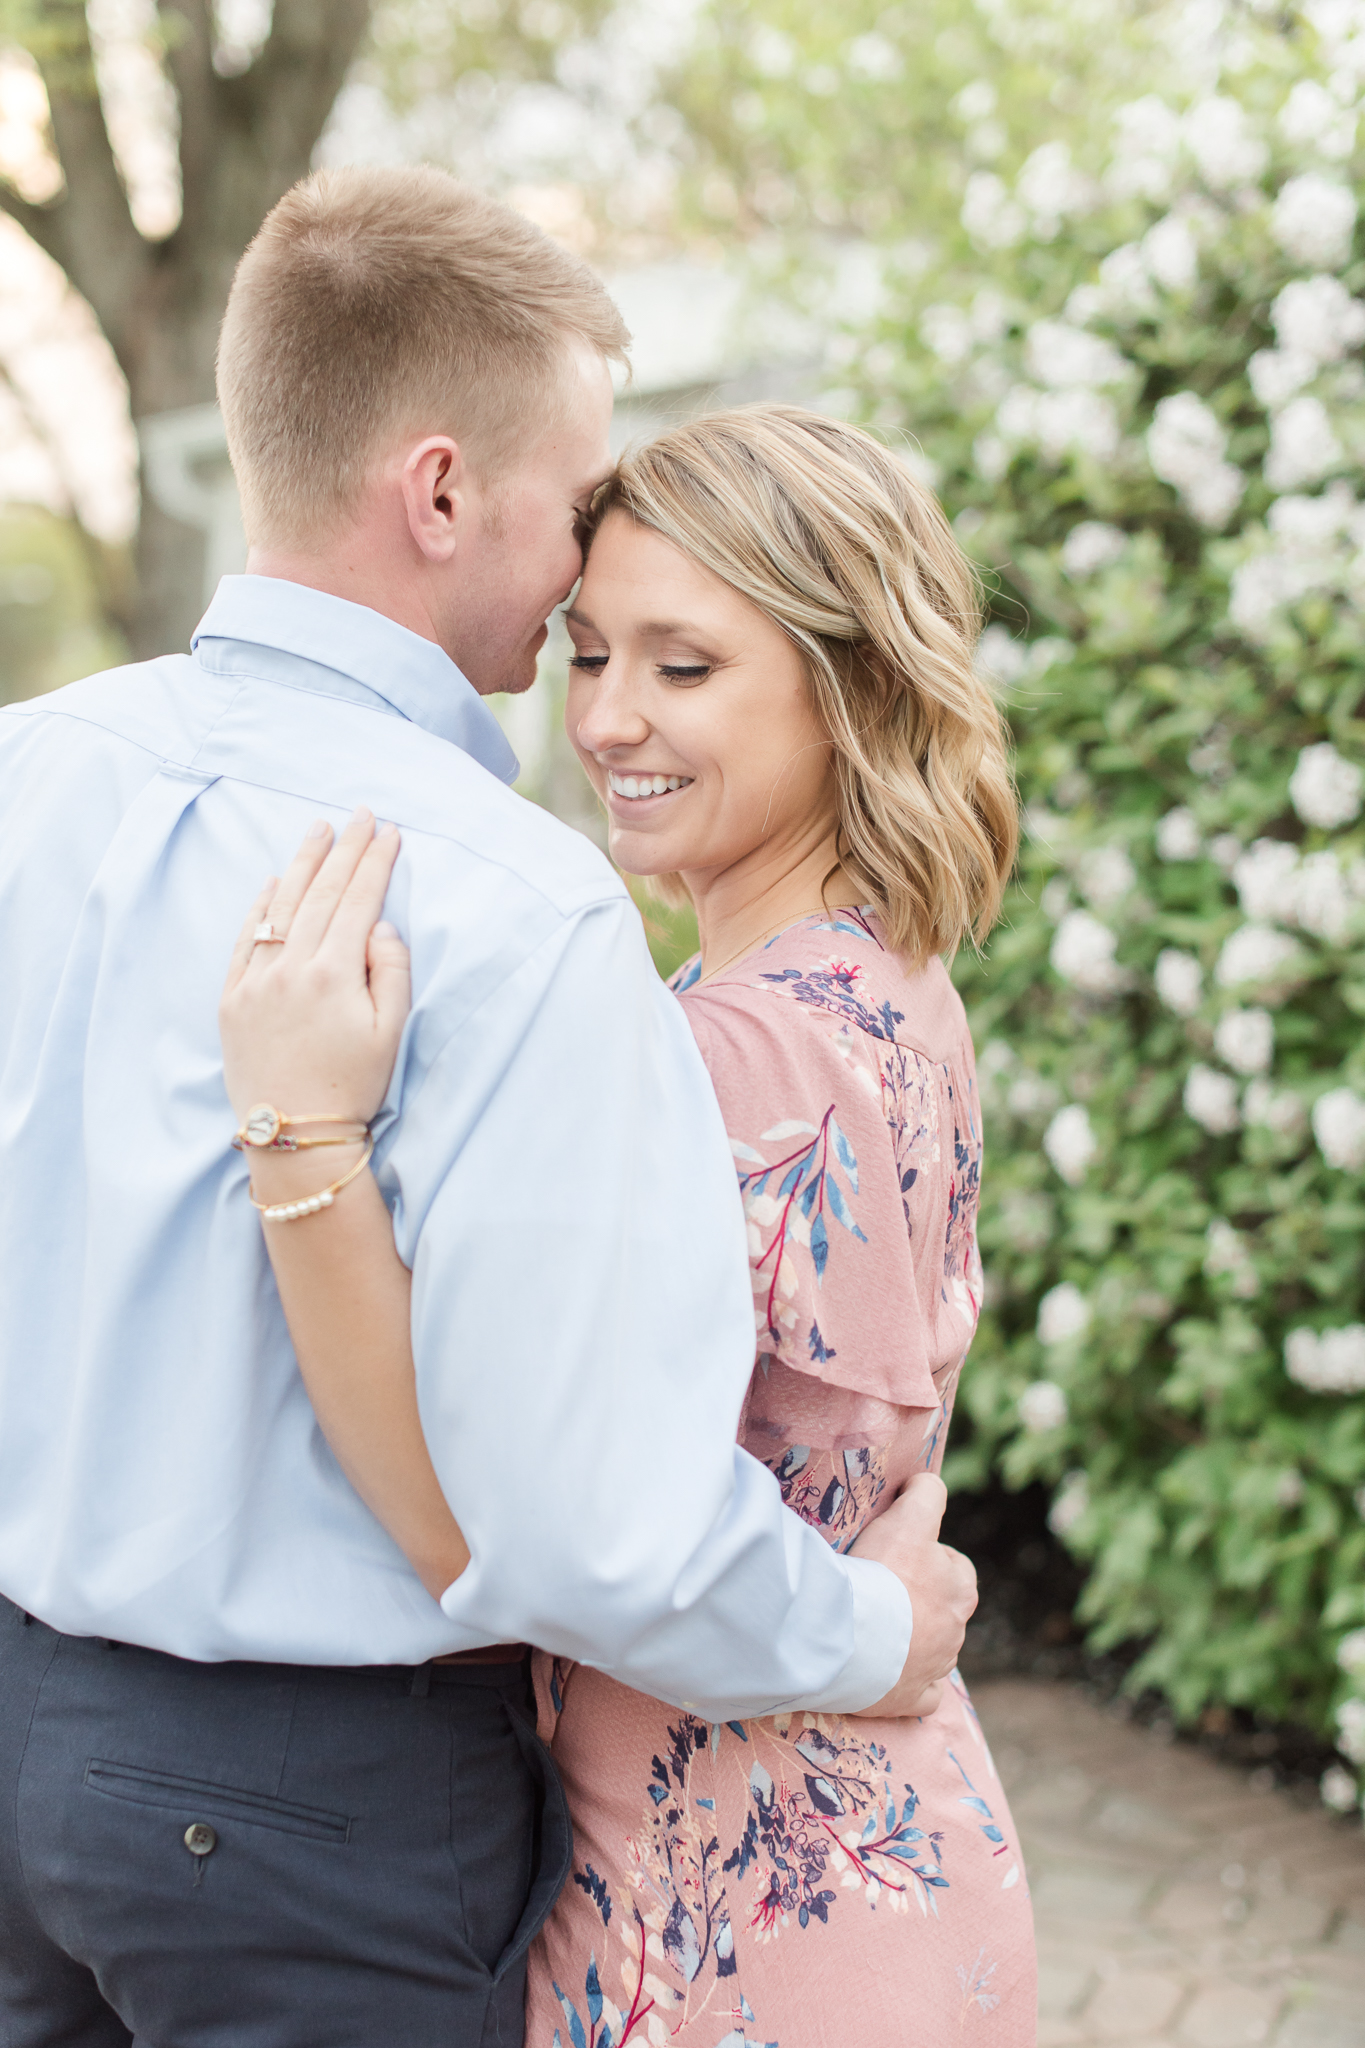 Richie Woods Nature Preserve and Mustard Seed Gardens Engagement Session Wedding Photos-63.jpg